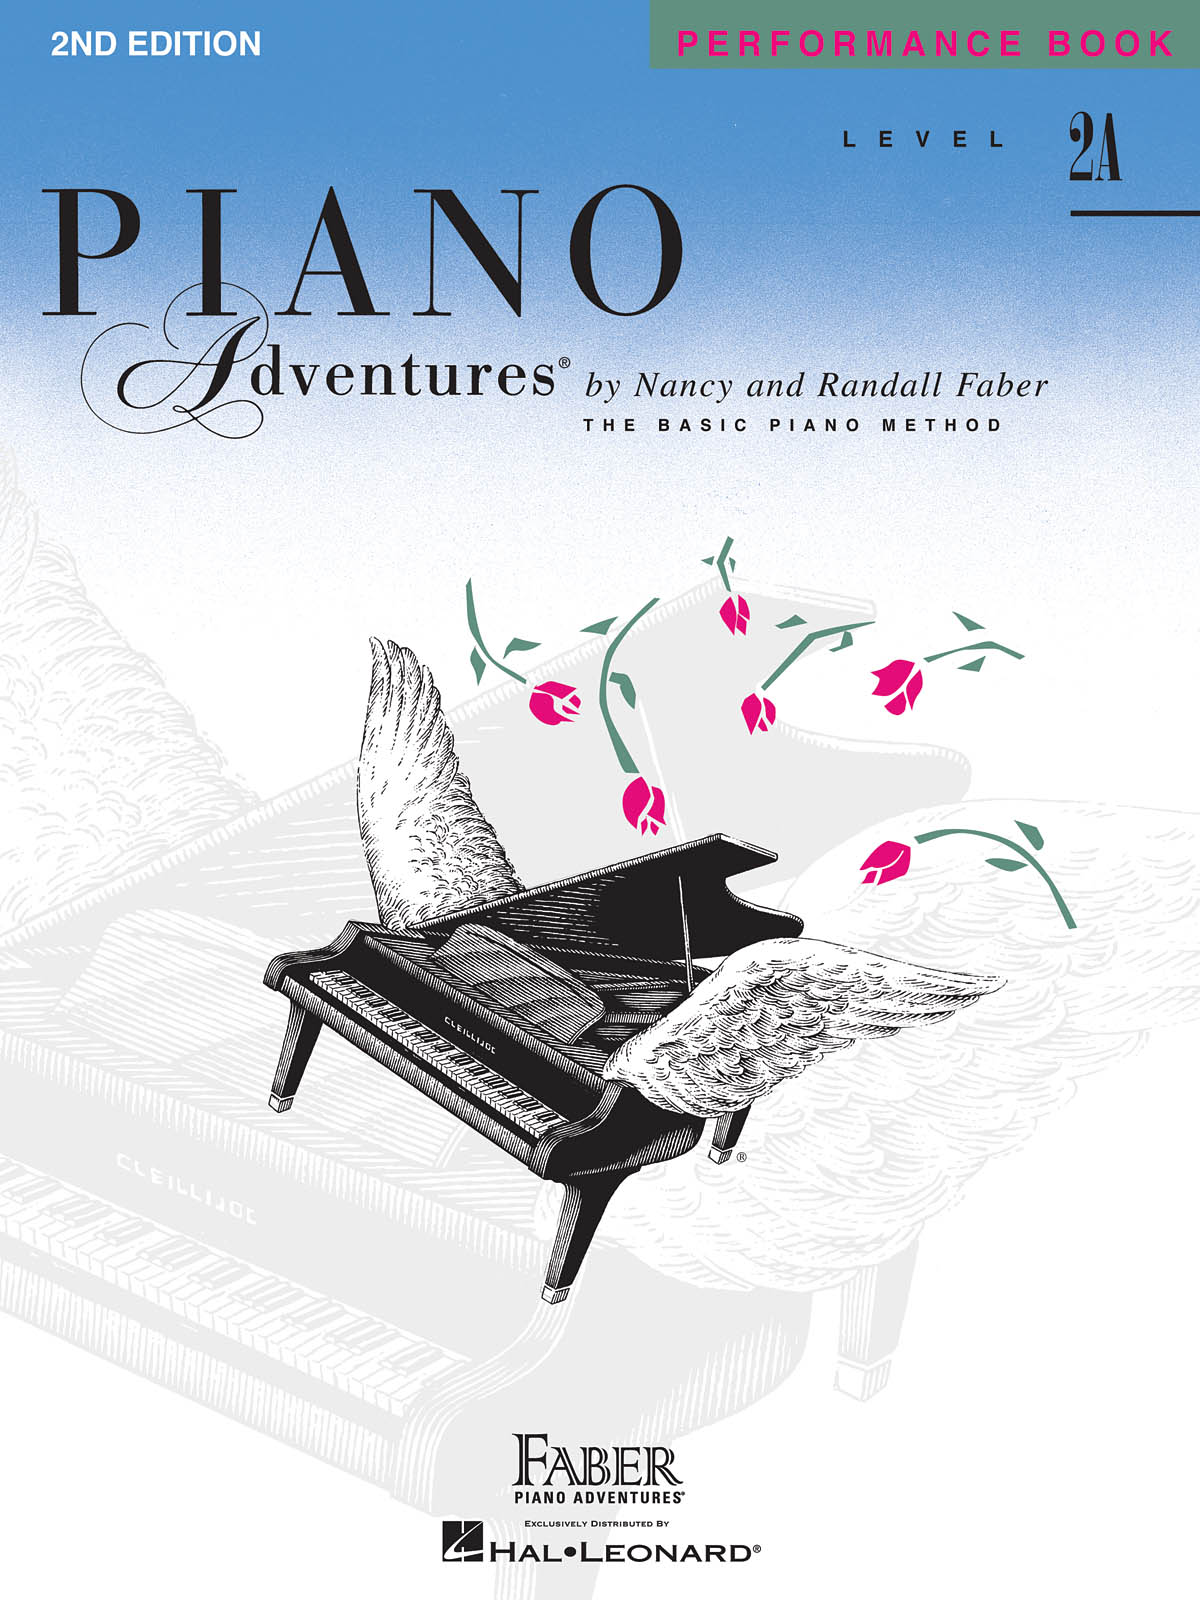 Faber Piano Adventures, Performance Book, Level 2A